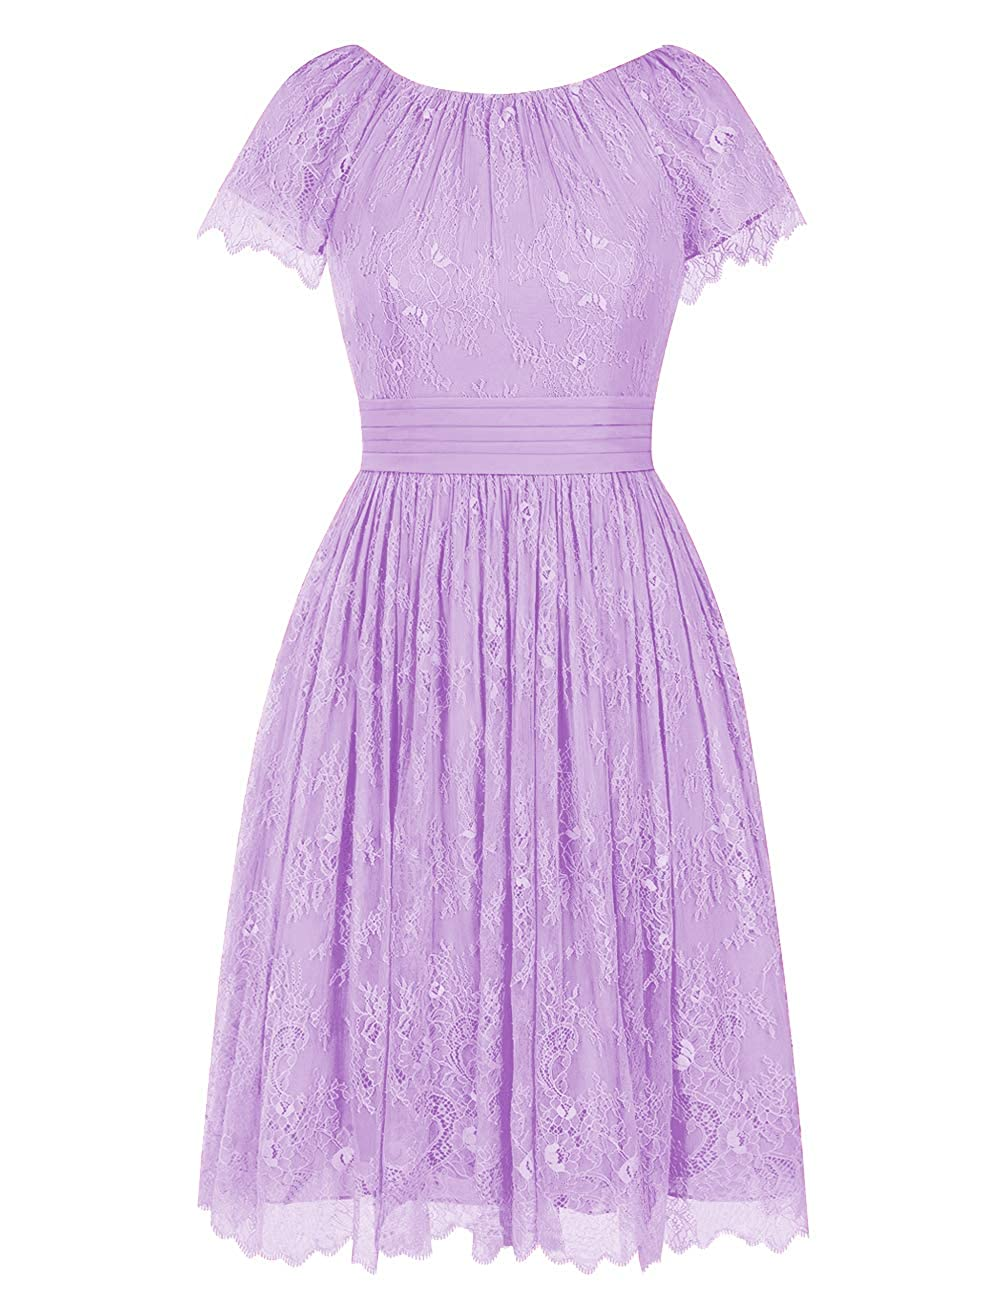 purplec Short Bridesmaid Dresses Flora Lace Cocktail Prom Gowns Homecoming Formal Party Dress